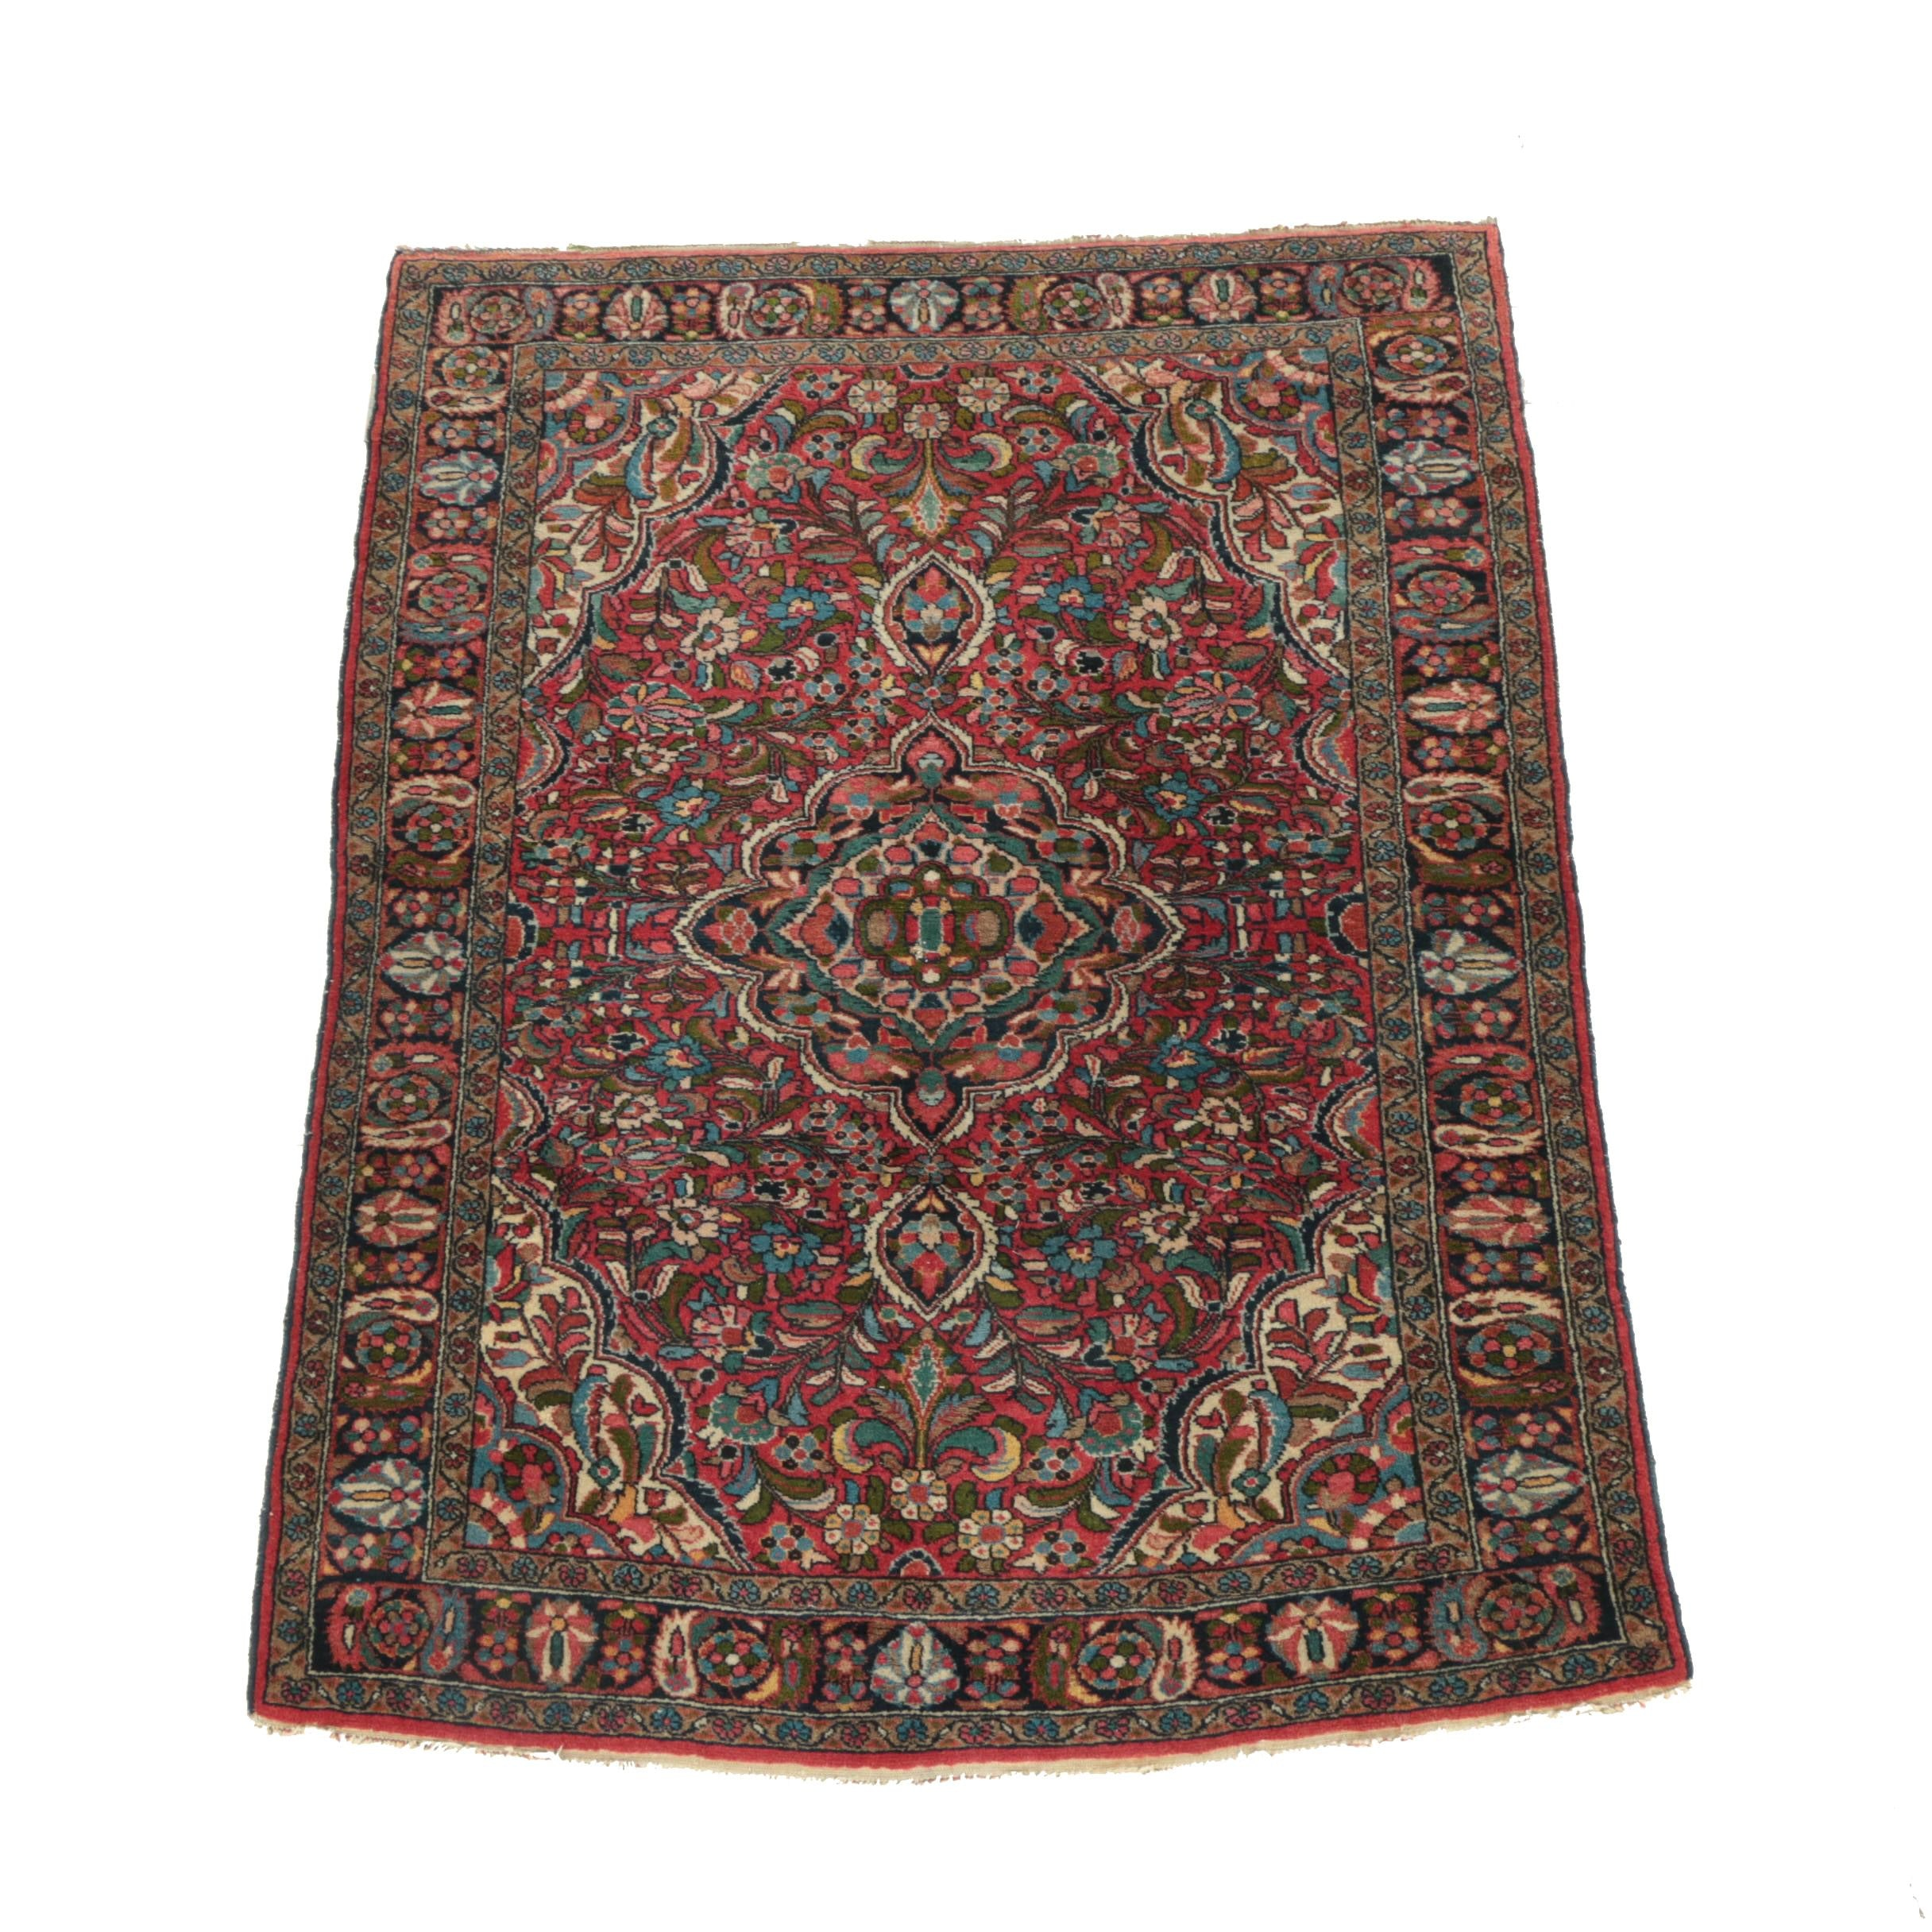 Hand-Knotted Persian-Style Wool Area Rug